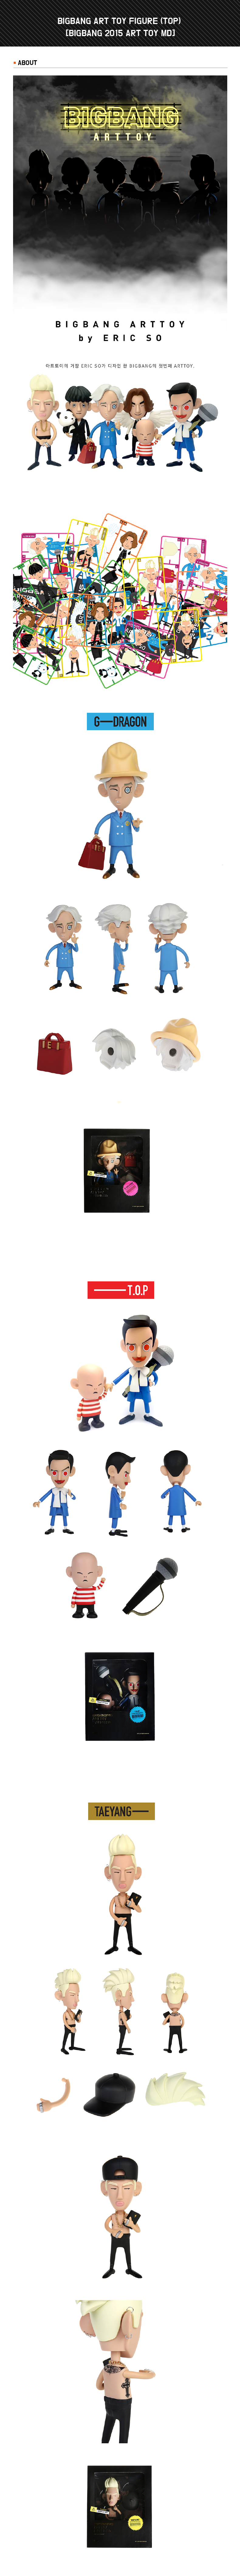 BIGBANG ART TOY FIGURE 艺术人偶 (TOP)